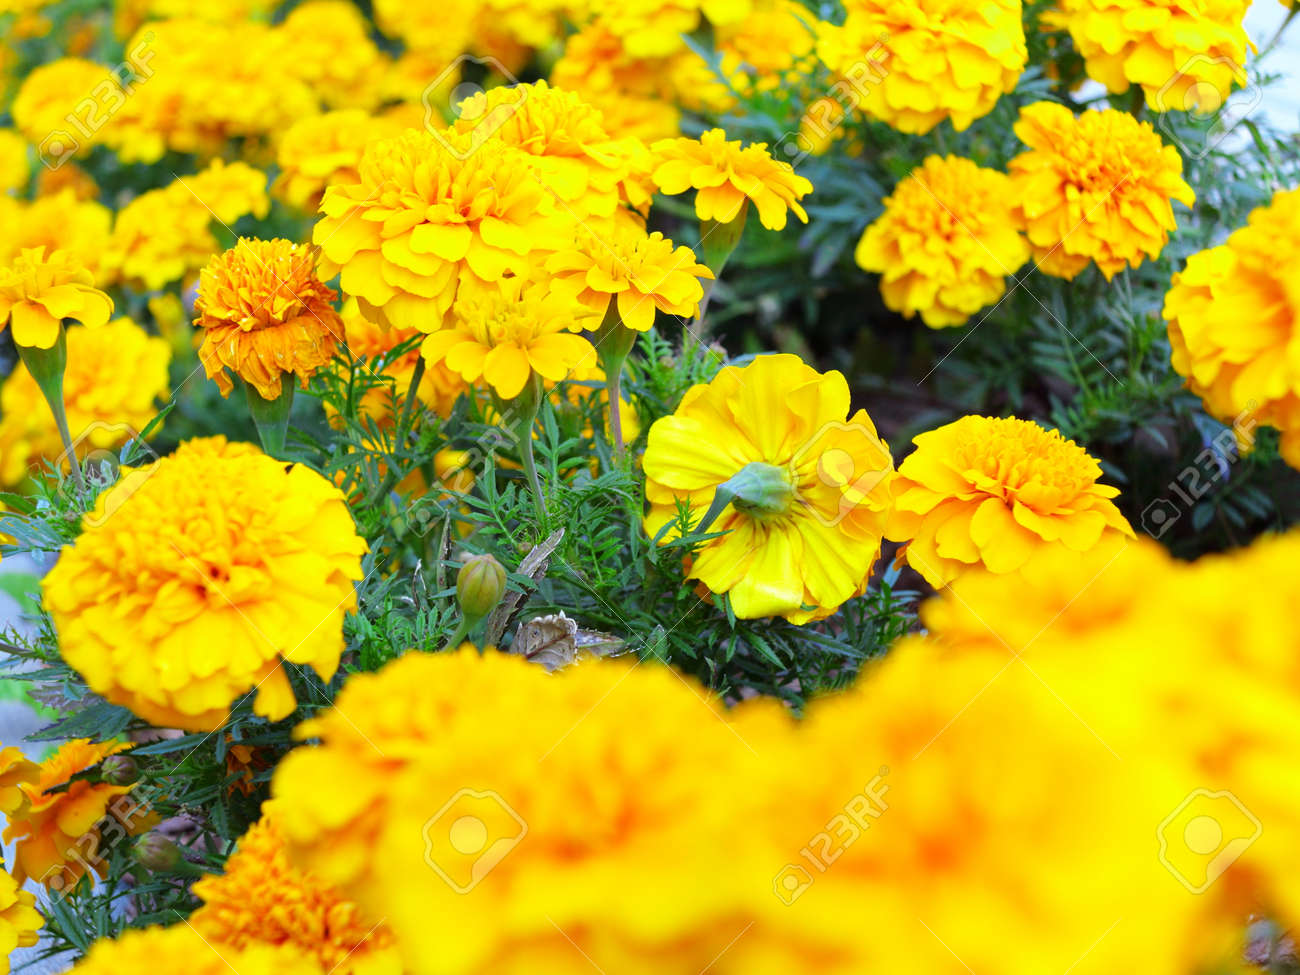 Yellow Aster Flowers In The Garden As Background Marigold Stock